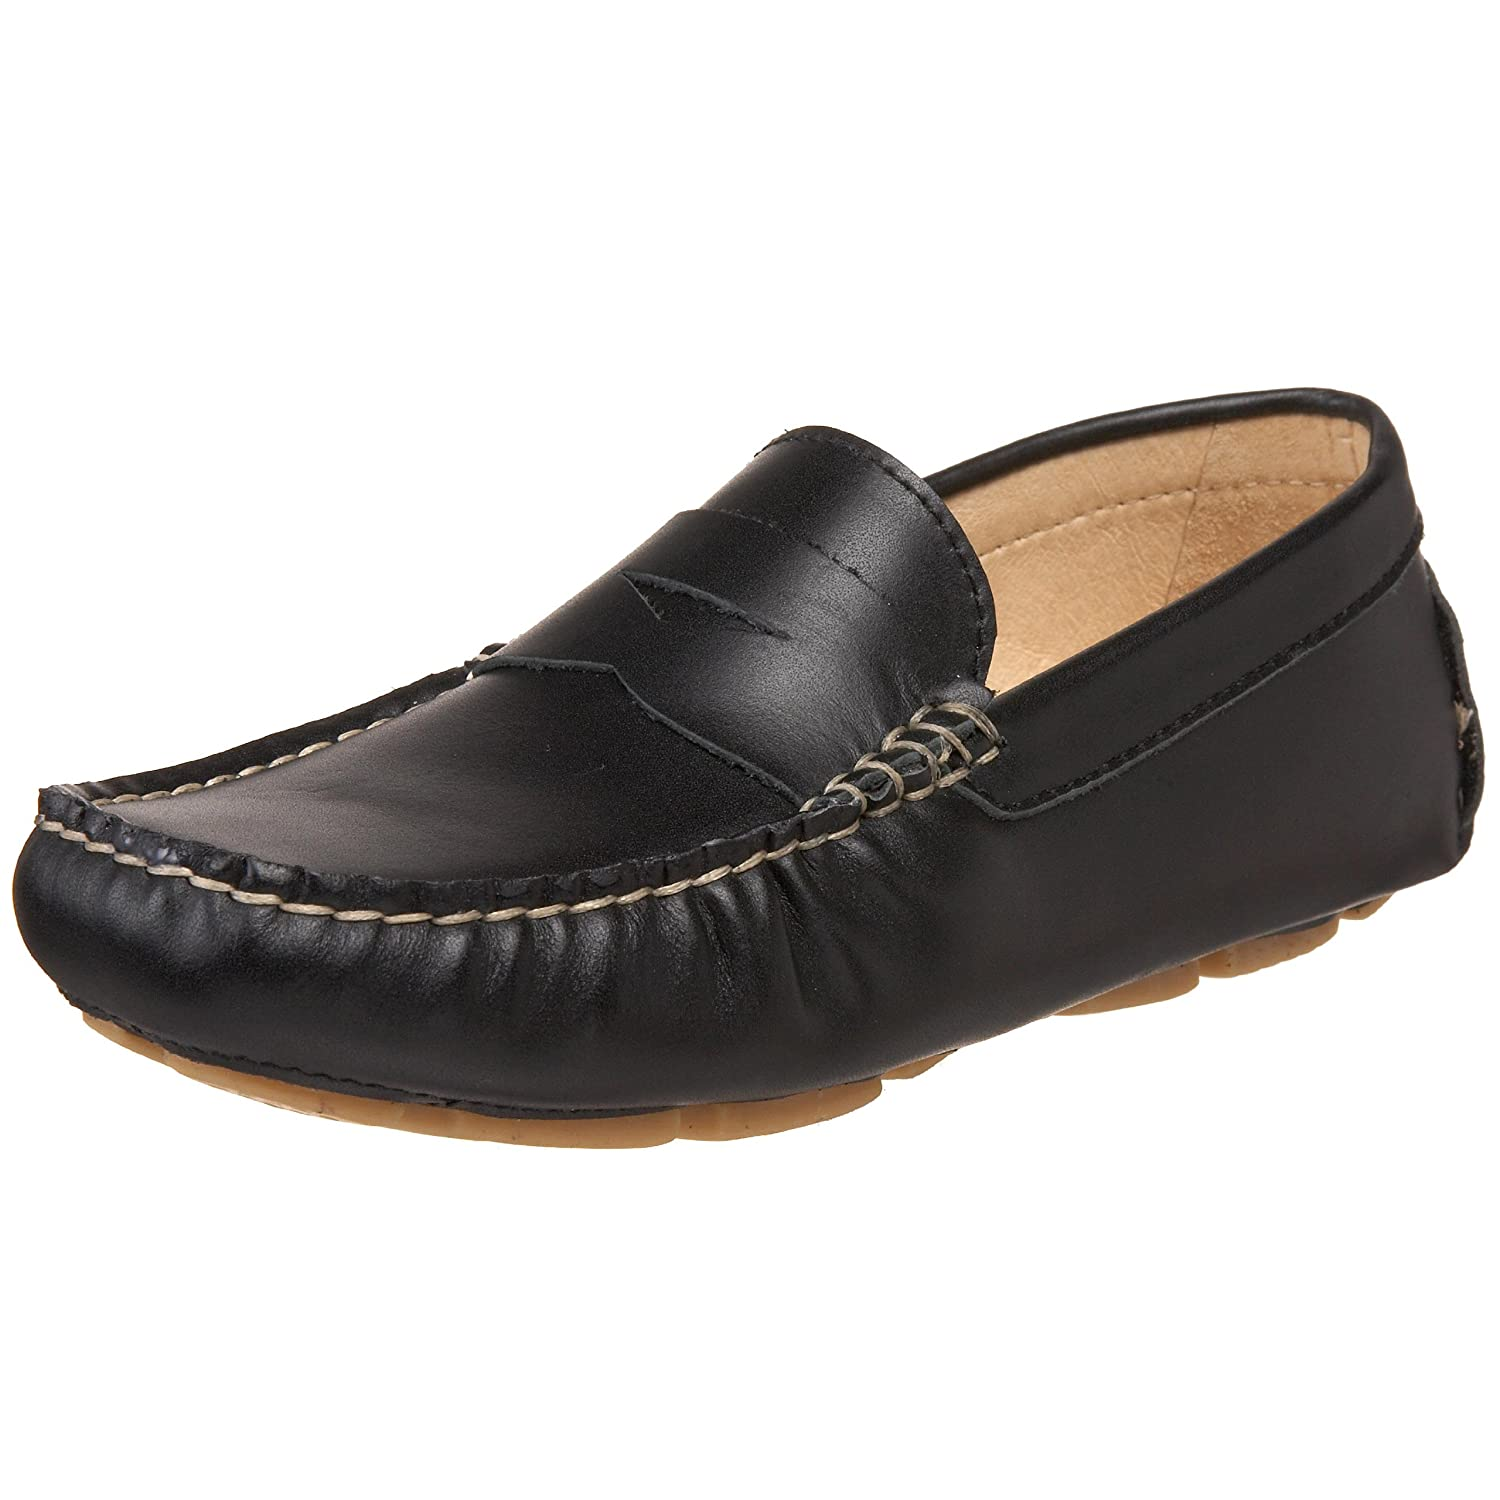 Amiana Toddler/Little Kid 15/A0412 Moccasin